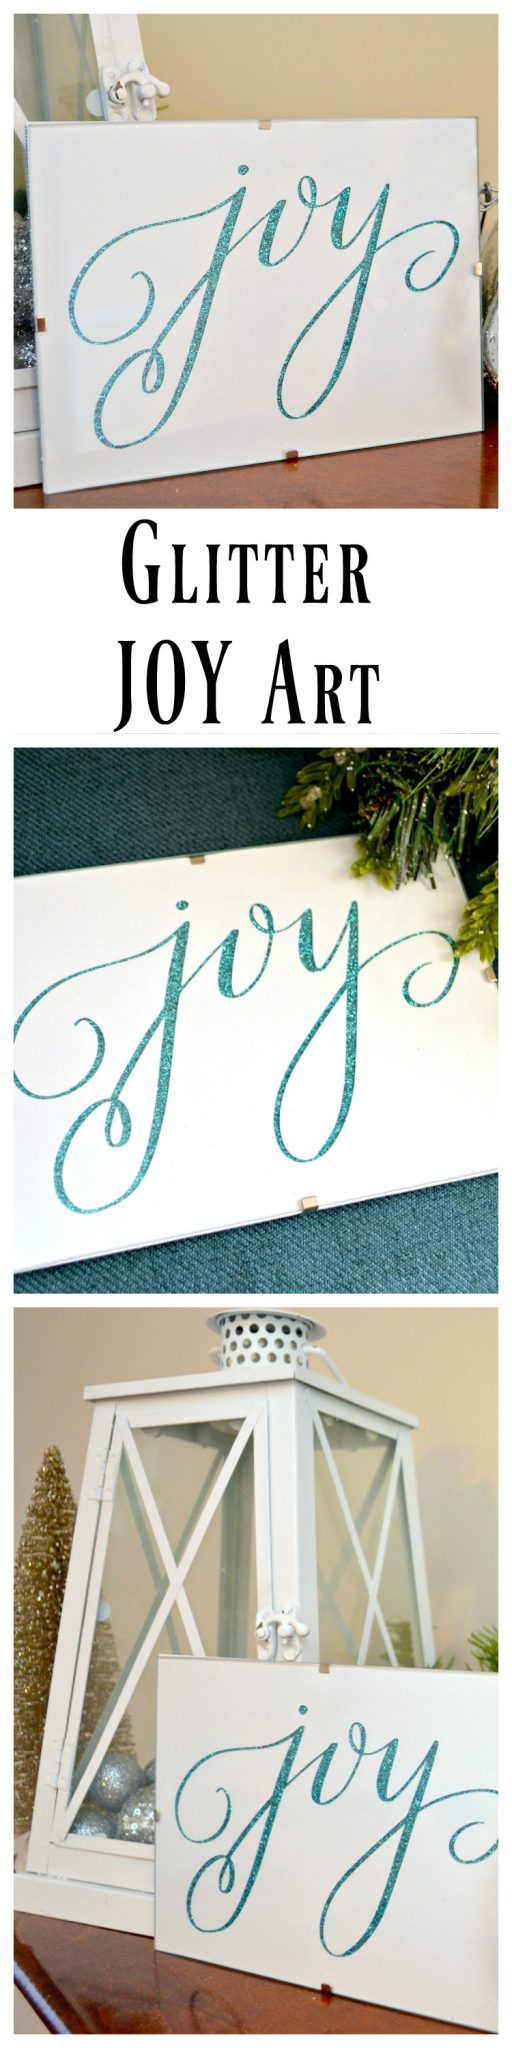 Glitter Joy Art for Christmas